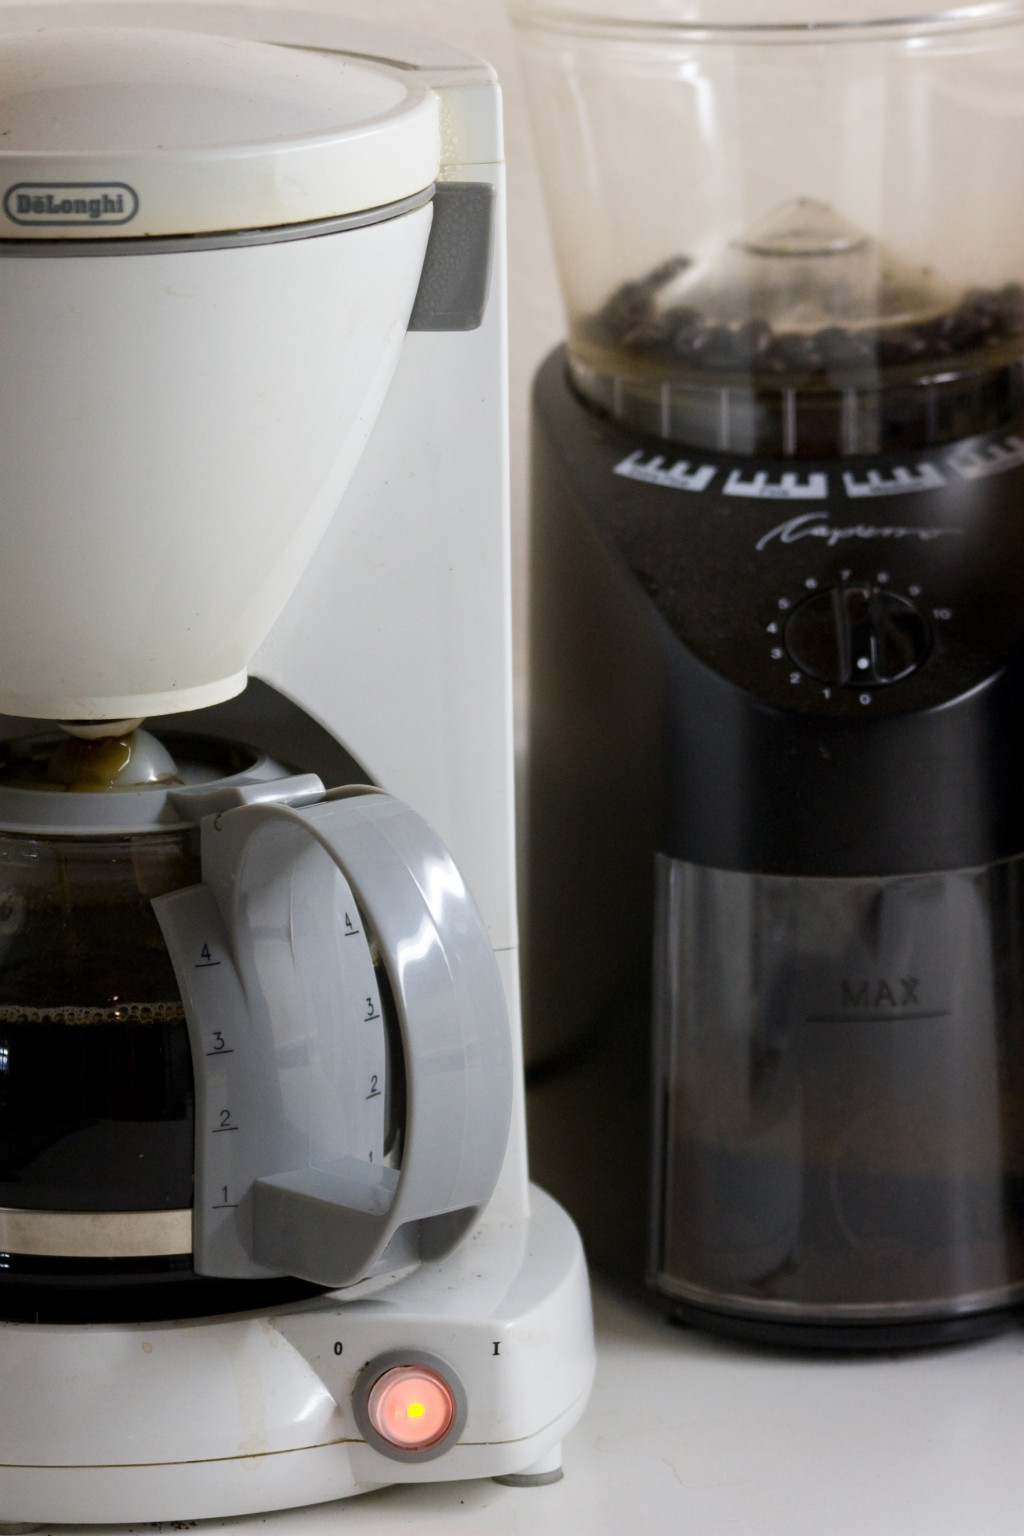 Cleaning Electric Coffee Maker With Vinegar : How to Clean a Coffee Maker with Vinegar